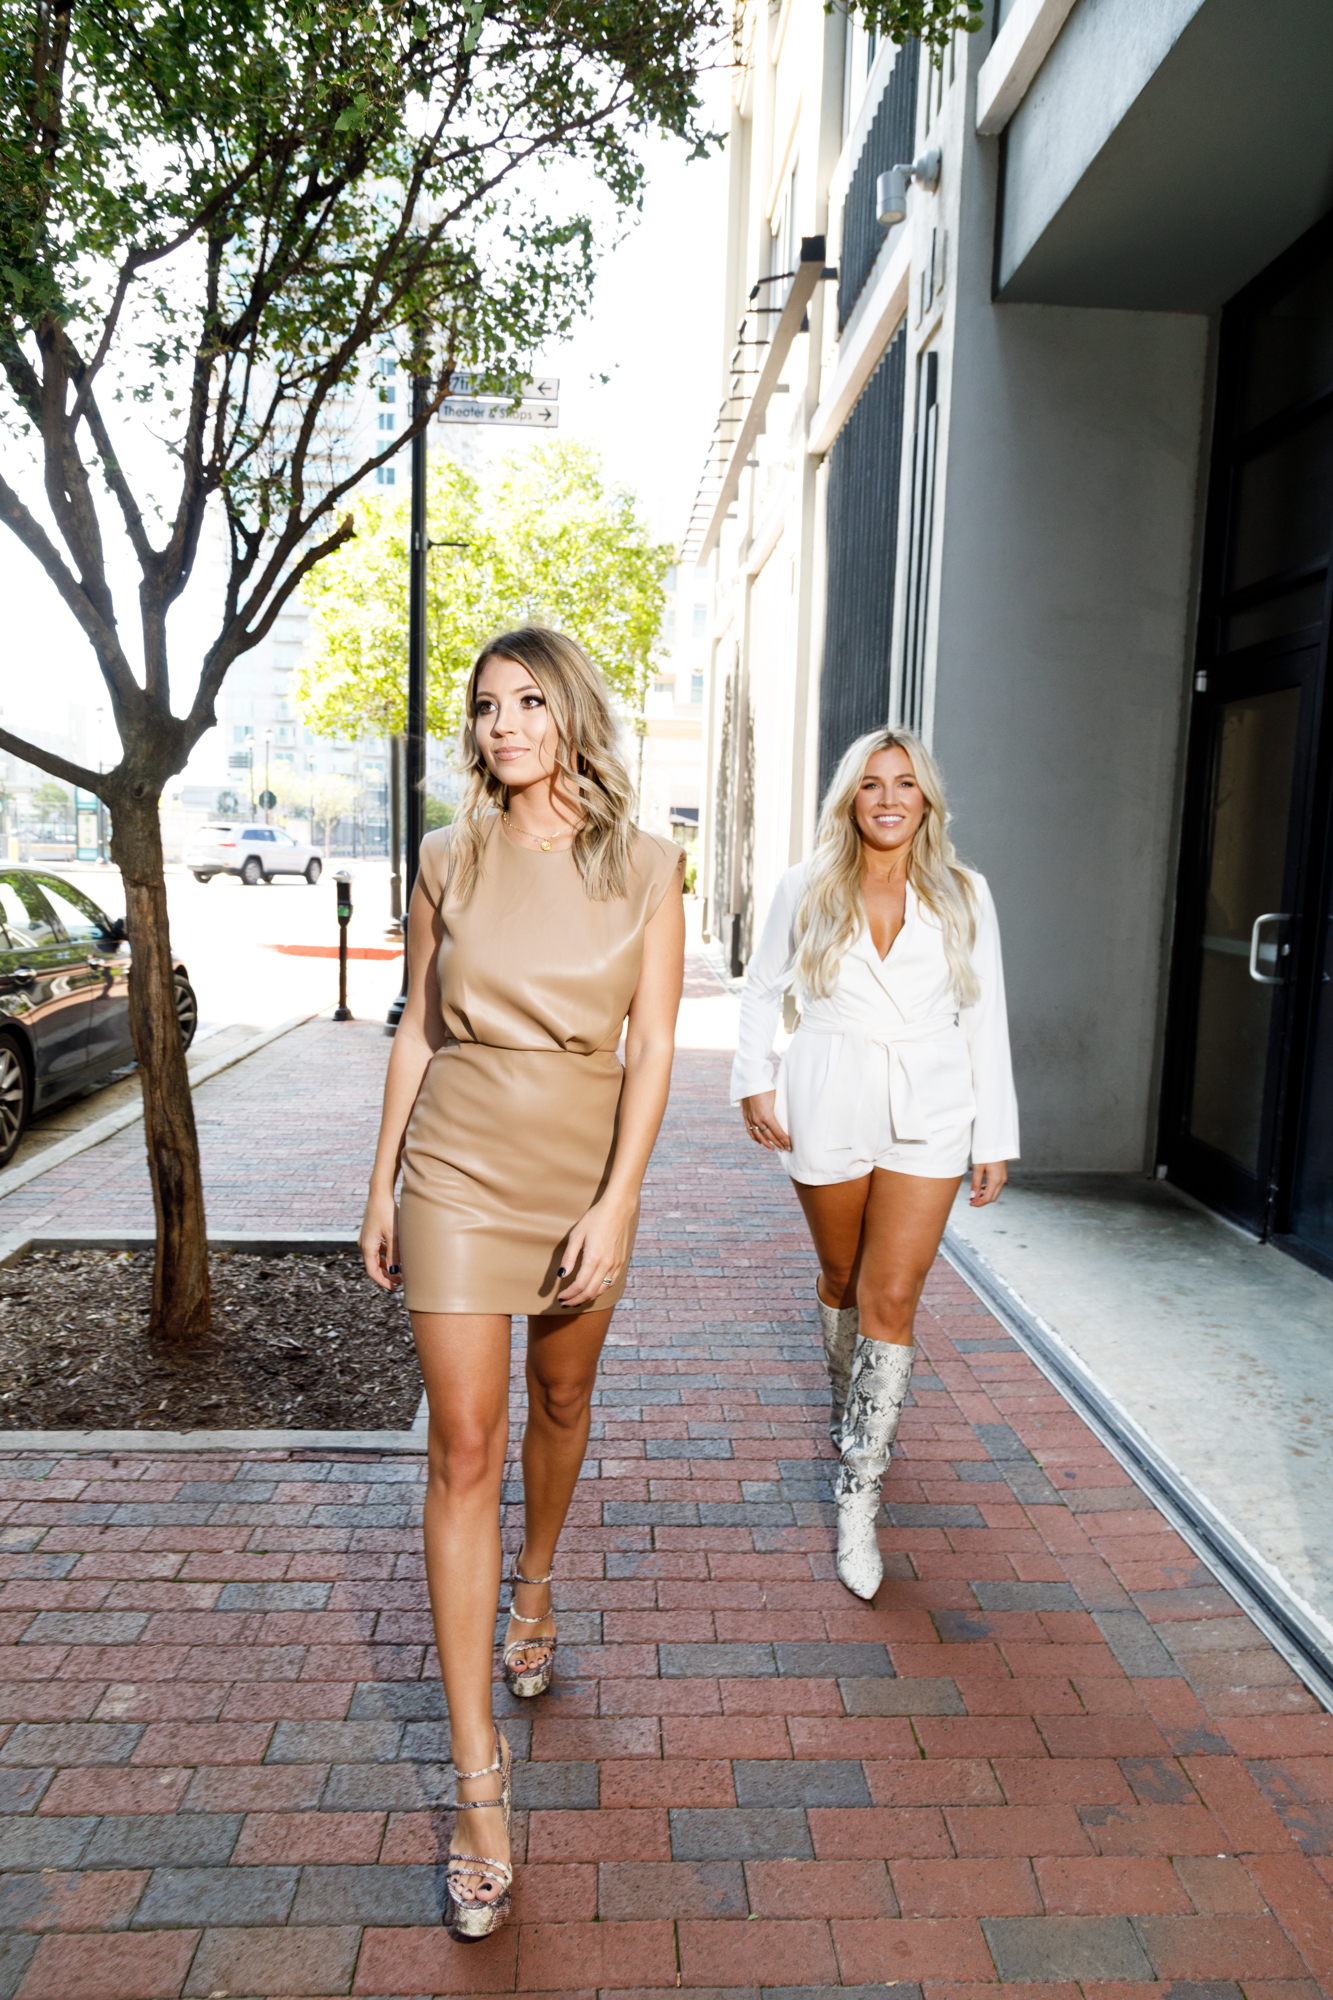 Patrick Heagney photographs the fifty most beautiful Atlantans strutting down the street for Jezebel Magazines yearly feature at Atlantic Station